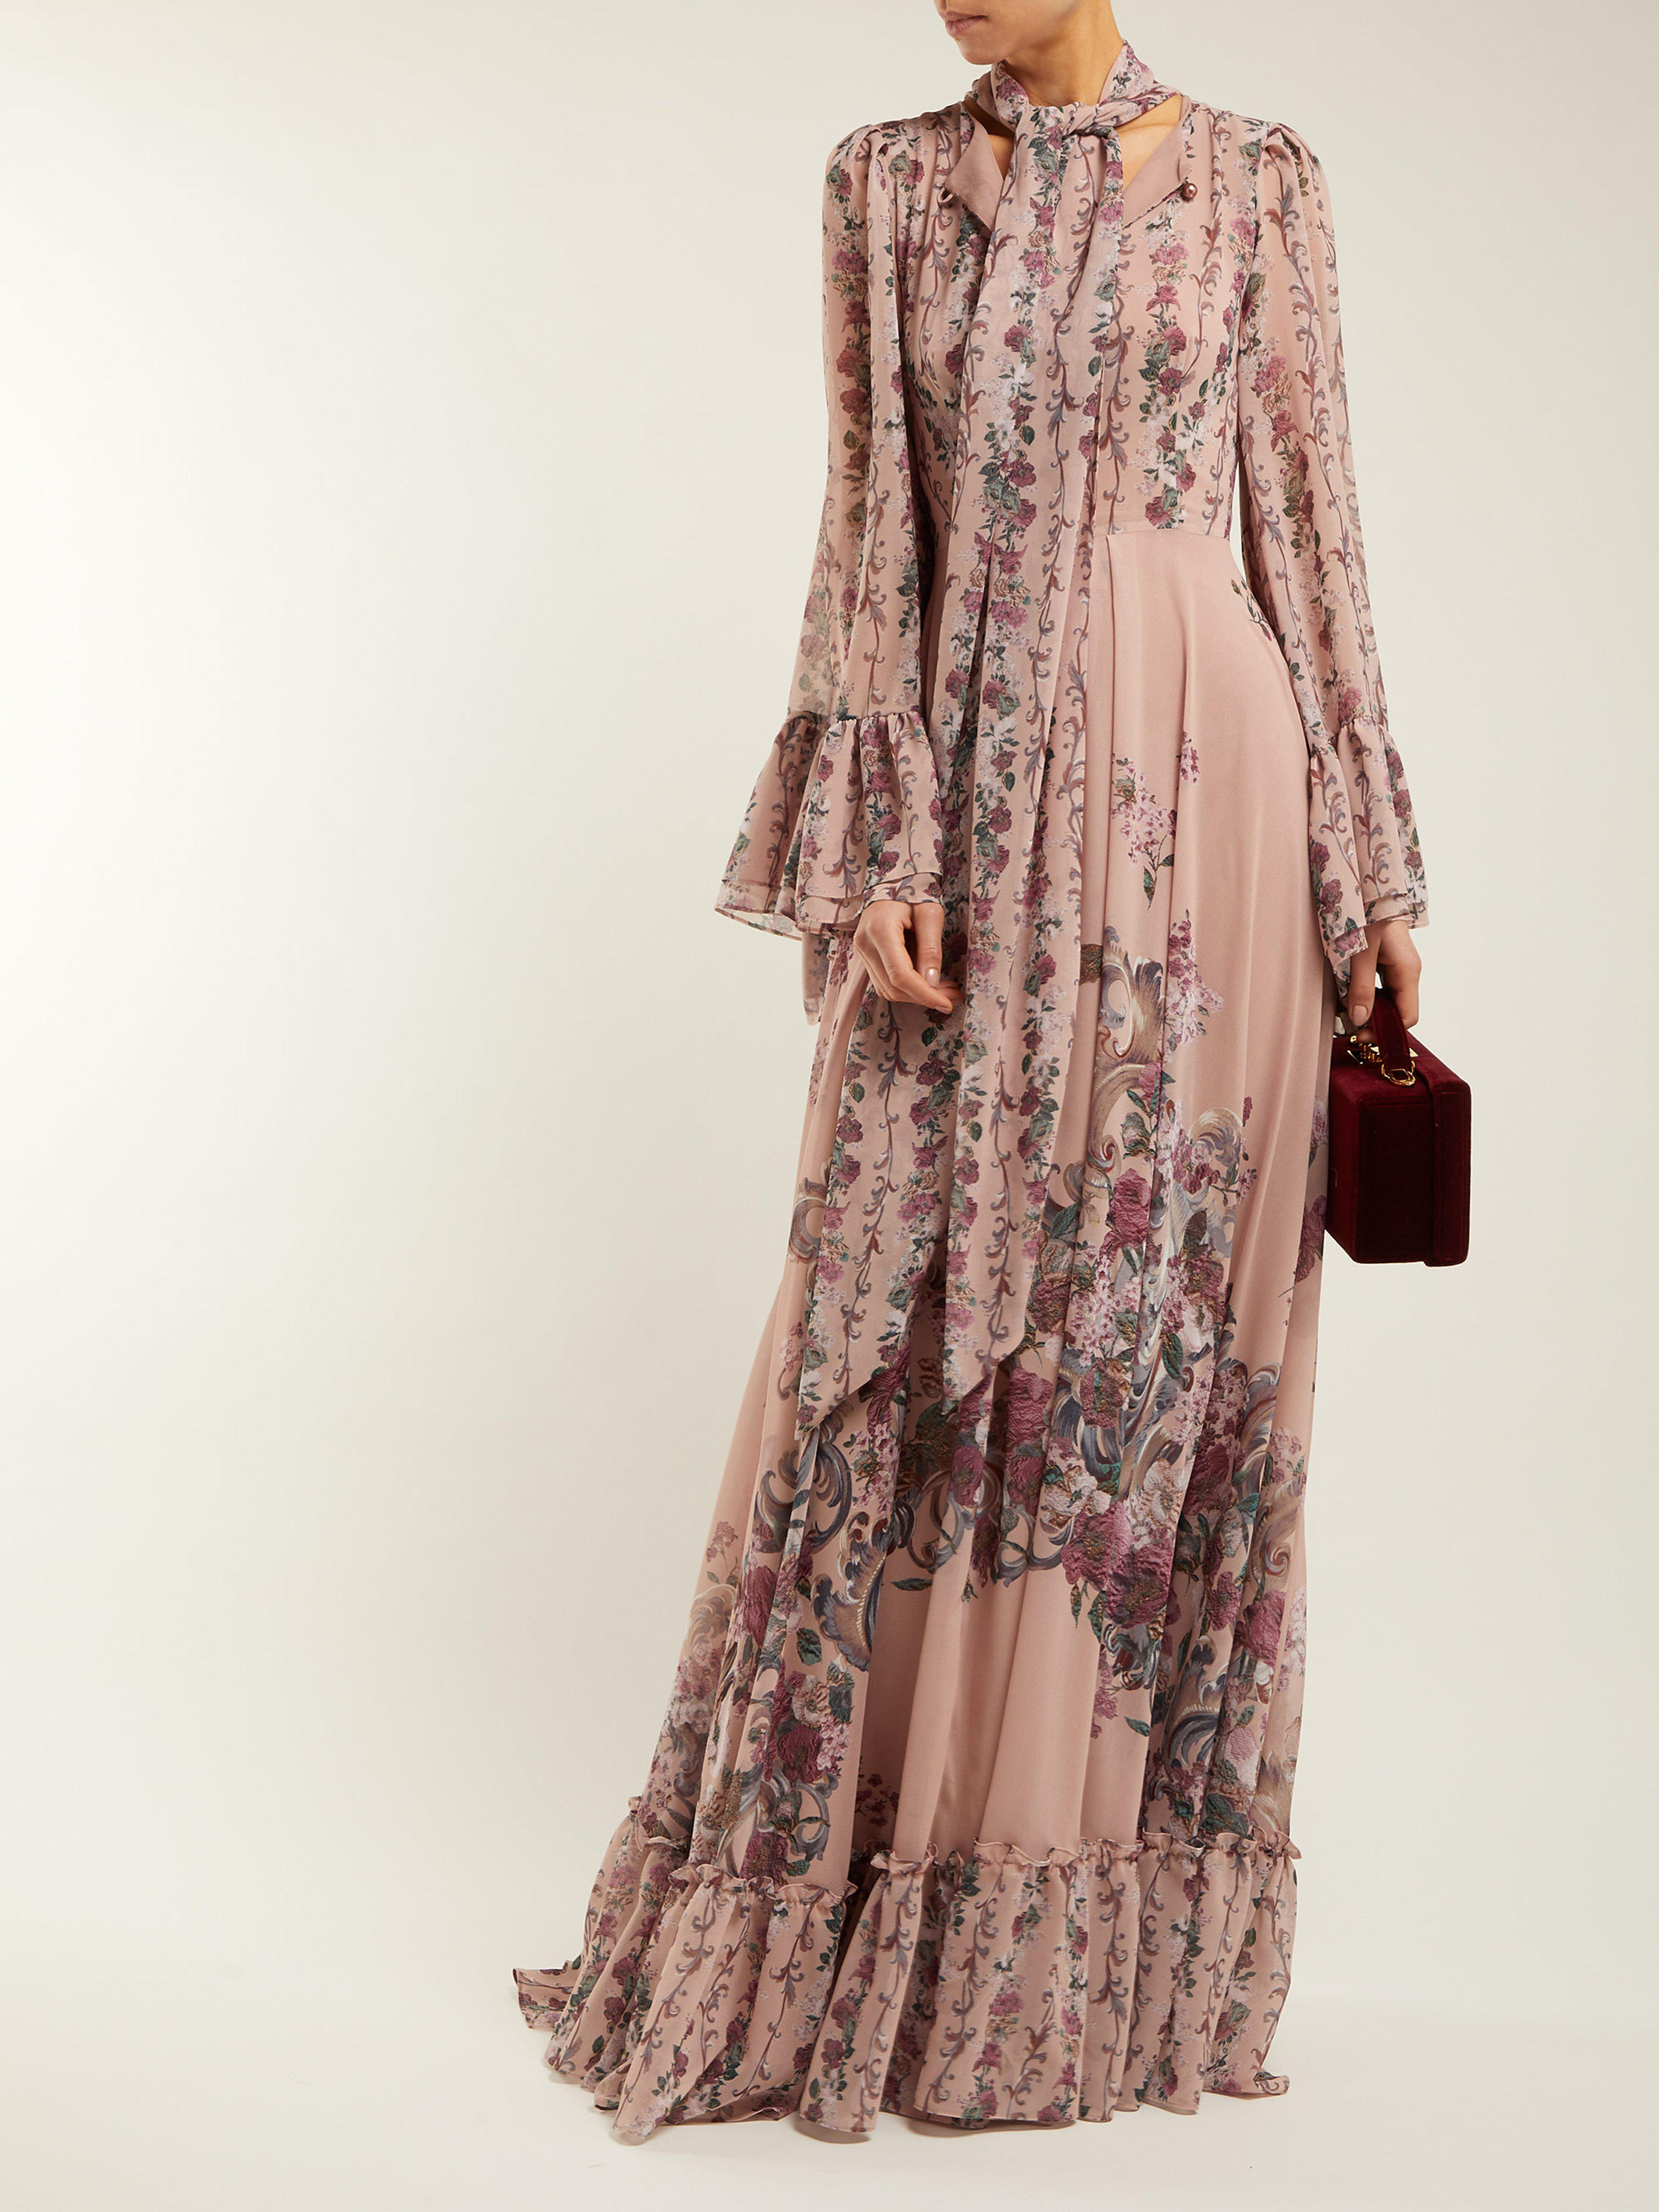 38d923b20558c Luisa Beccaria Pussy Bow Floral Print Georgette Gown in Pink - Lyst